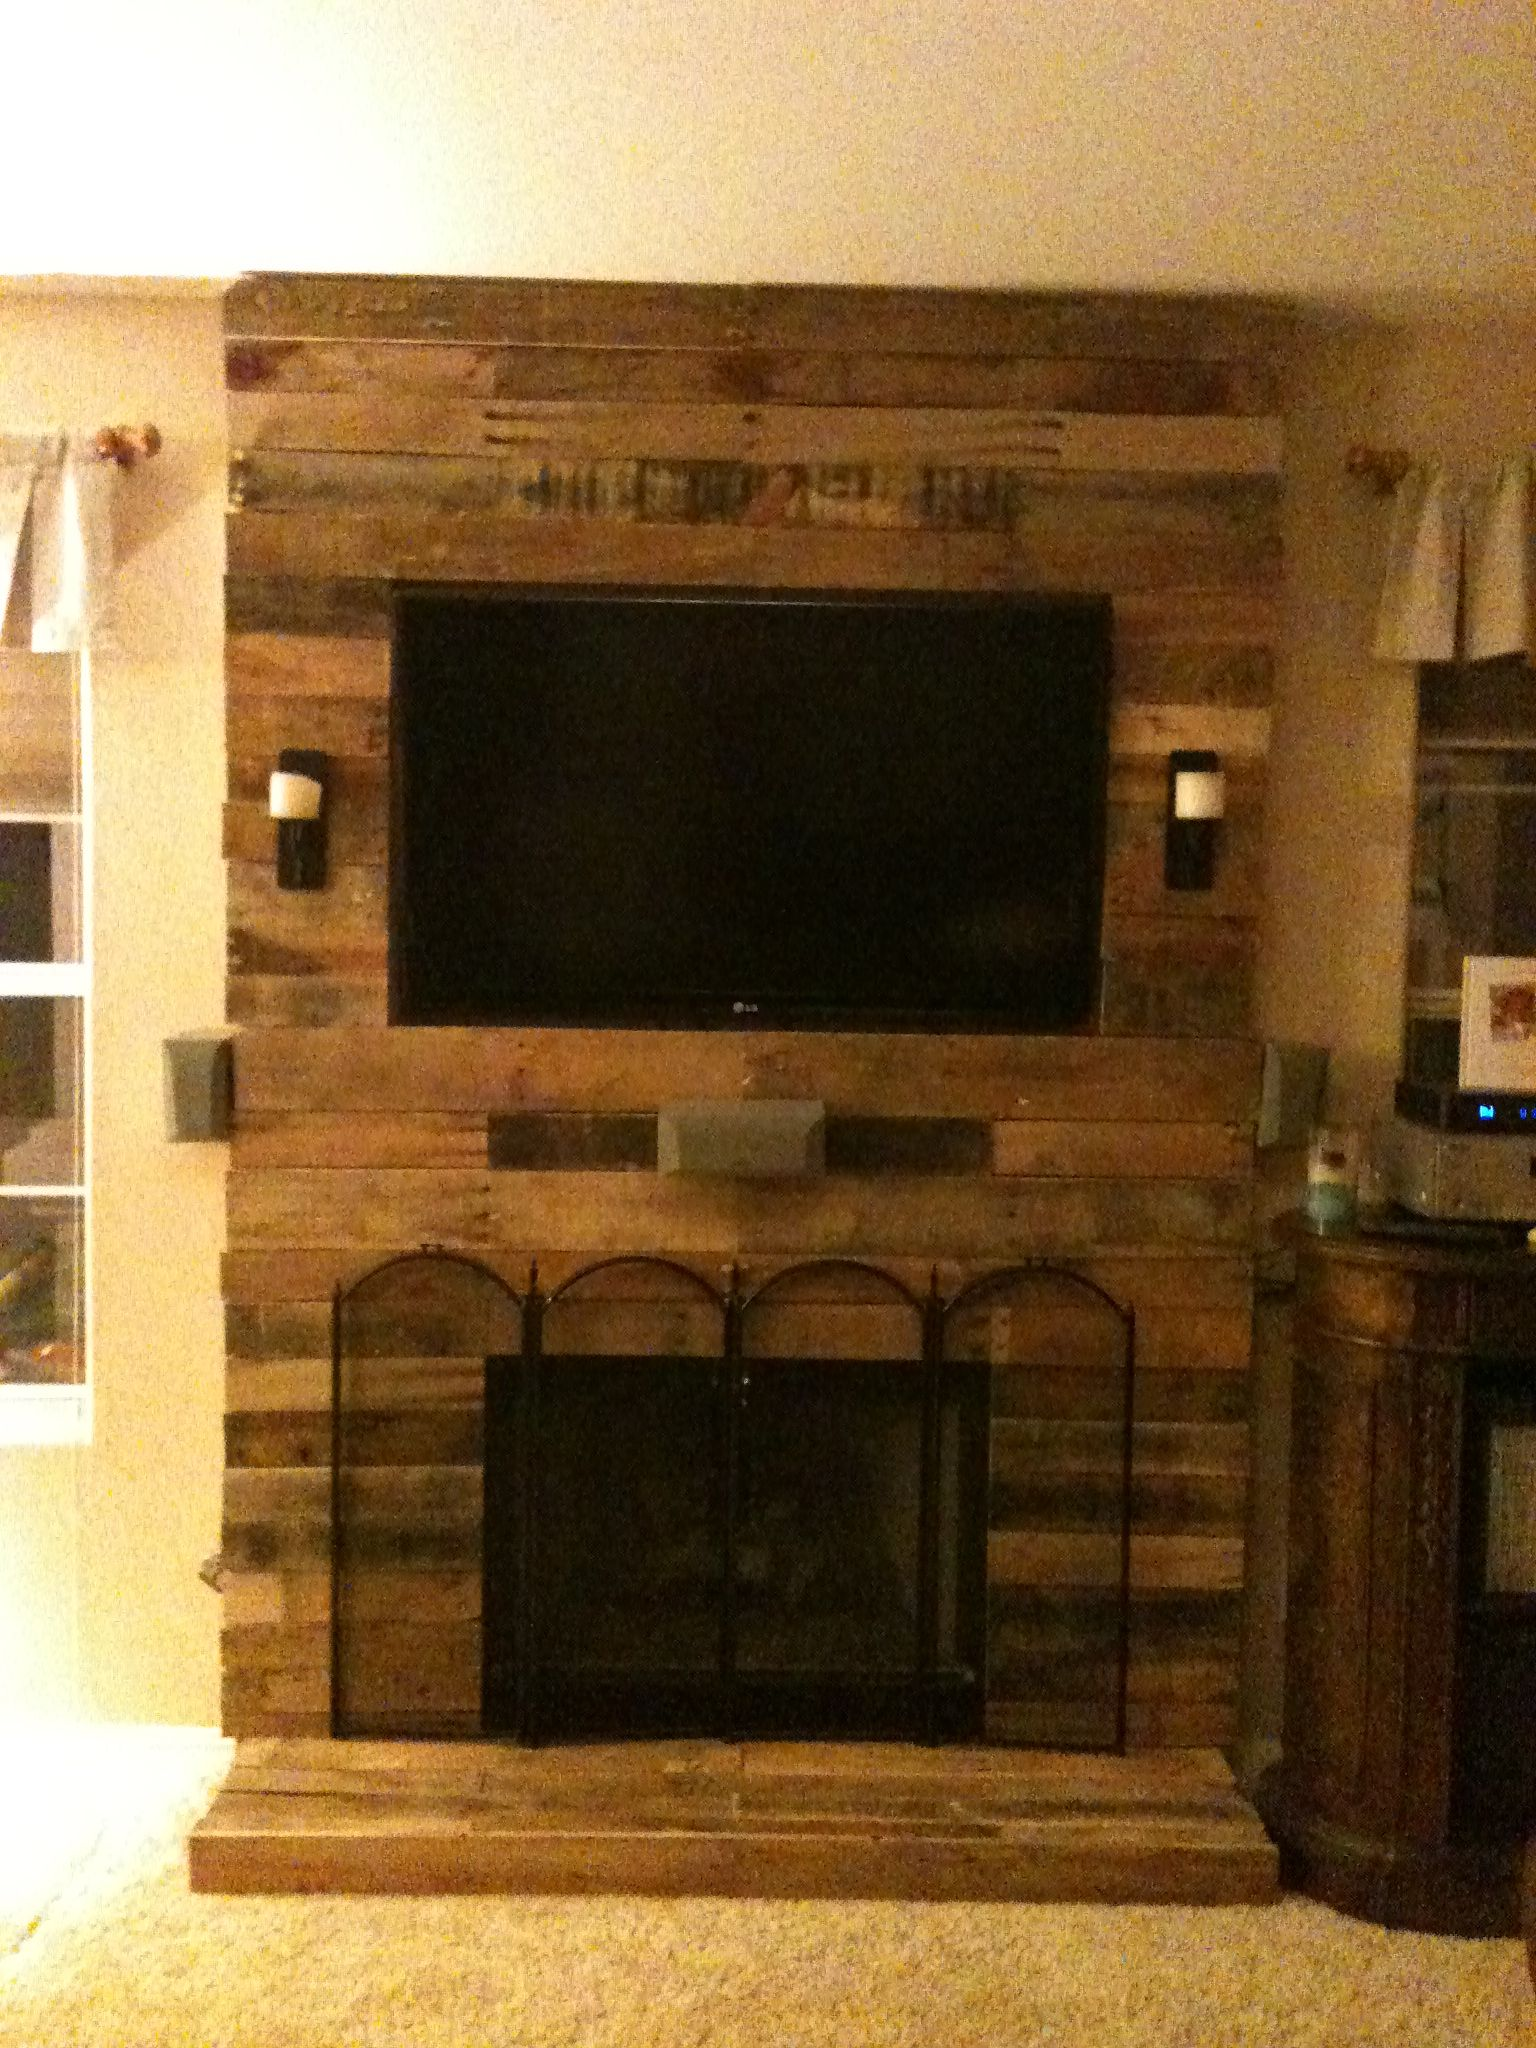 Pallet Fireplace Surround Made With Pallet Wood And 2x4 Framing